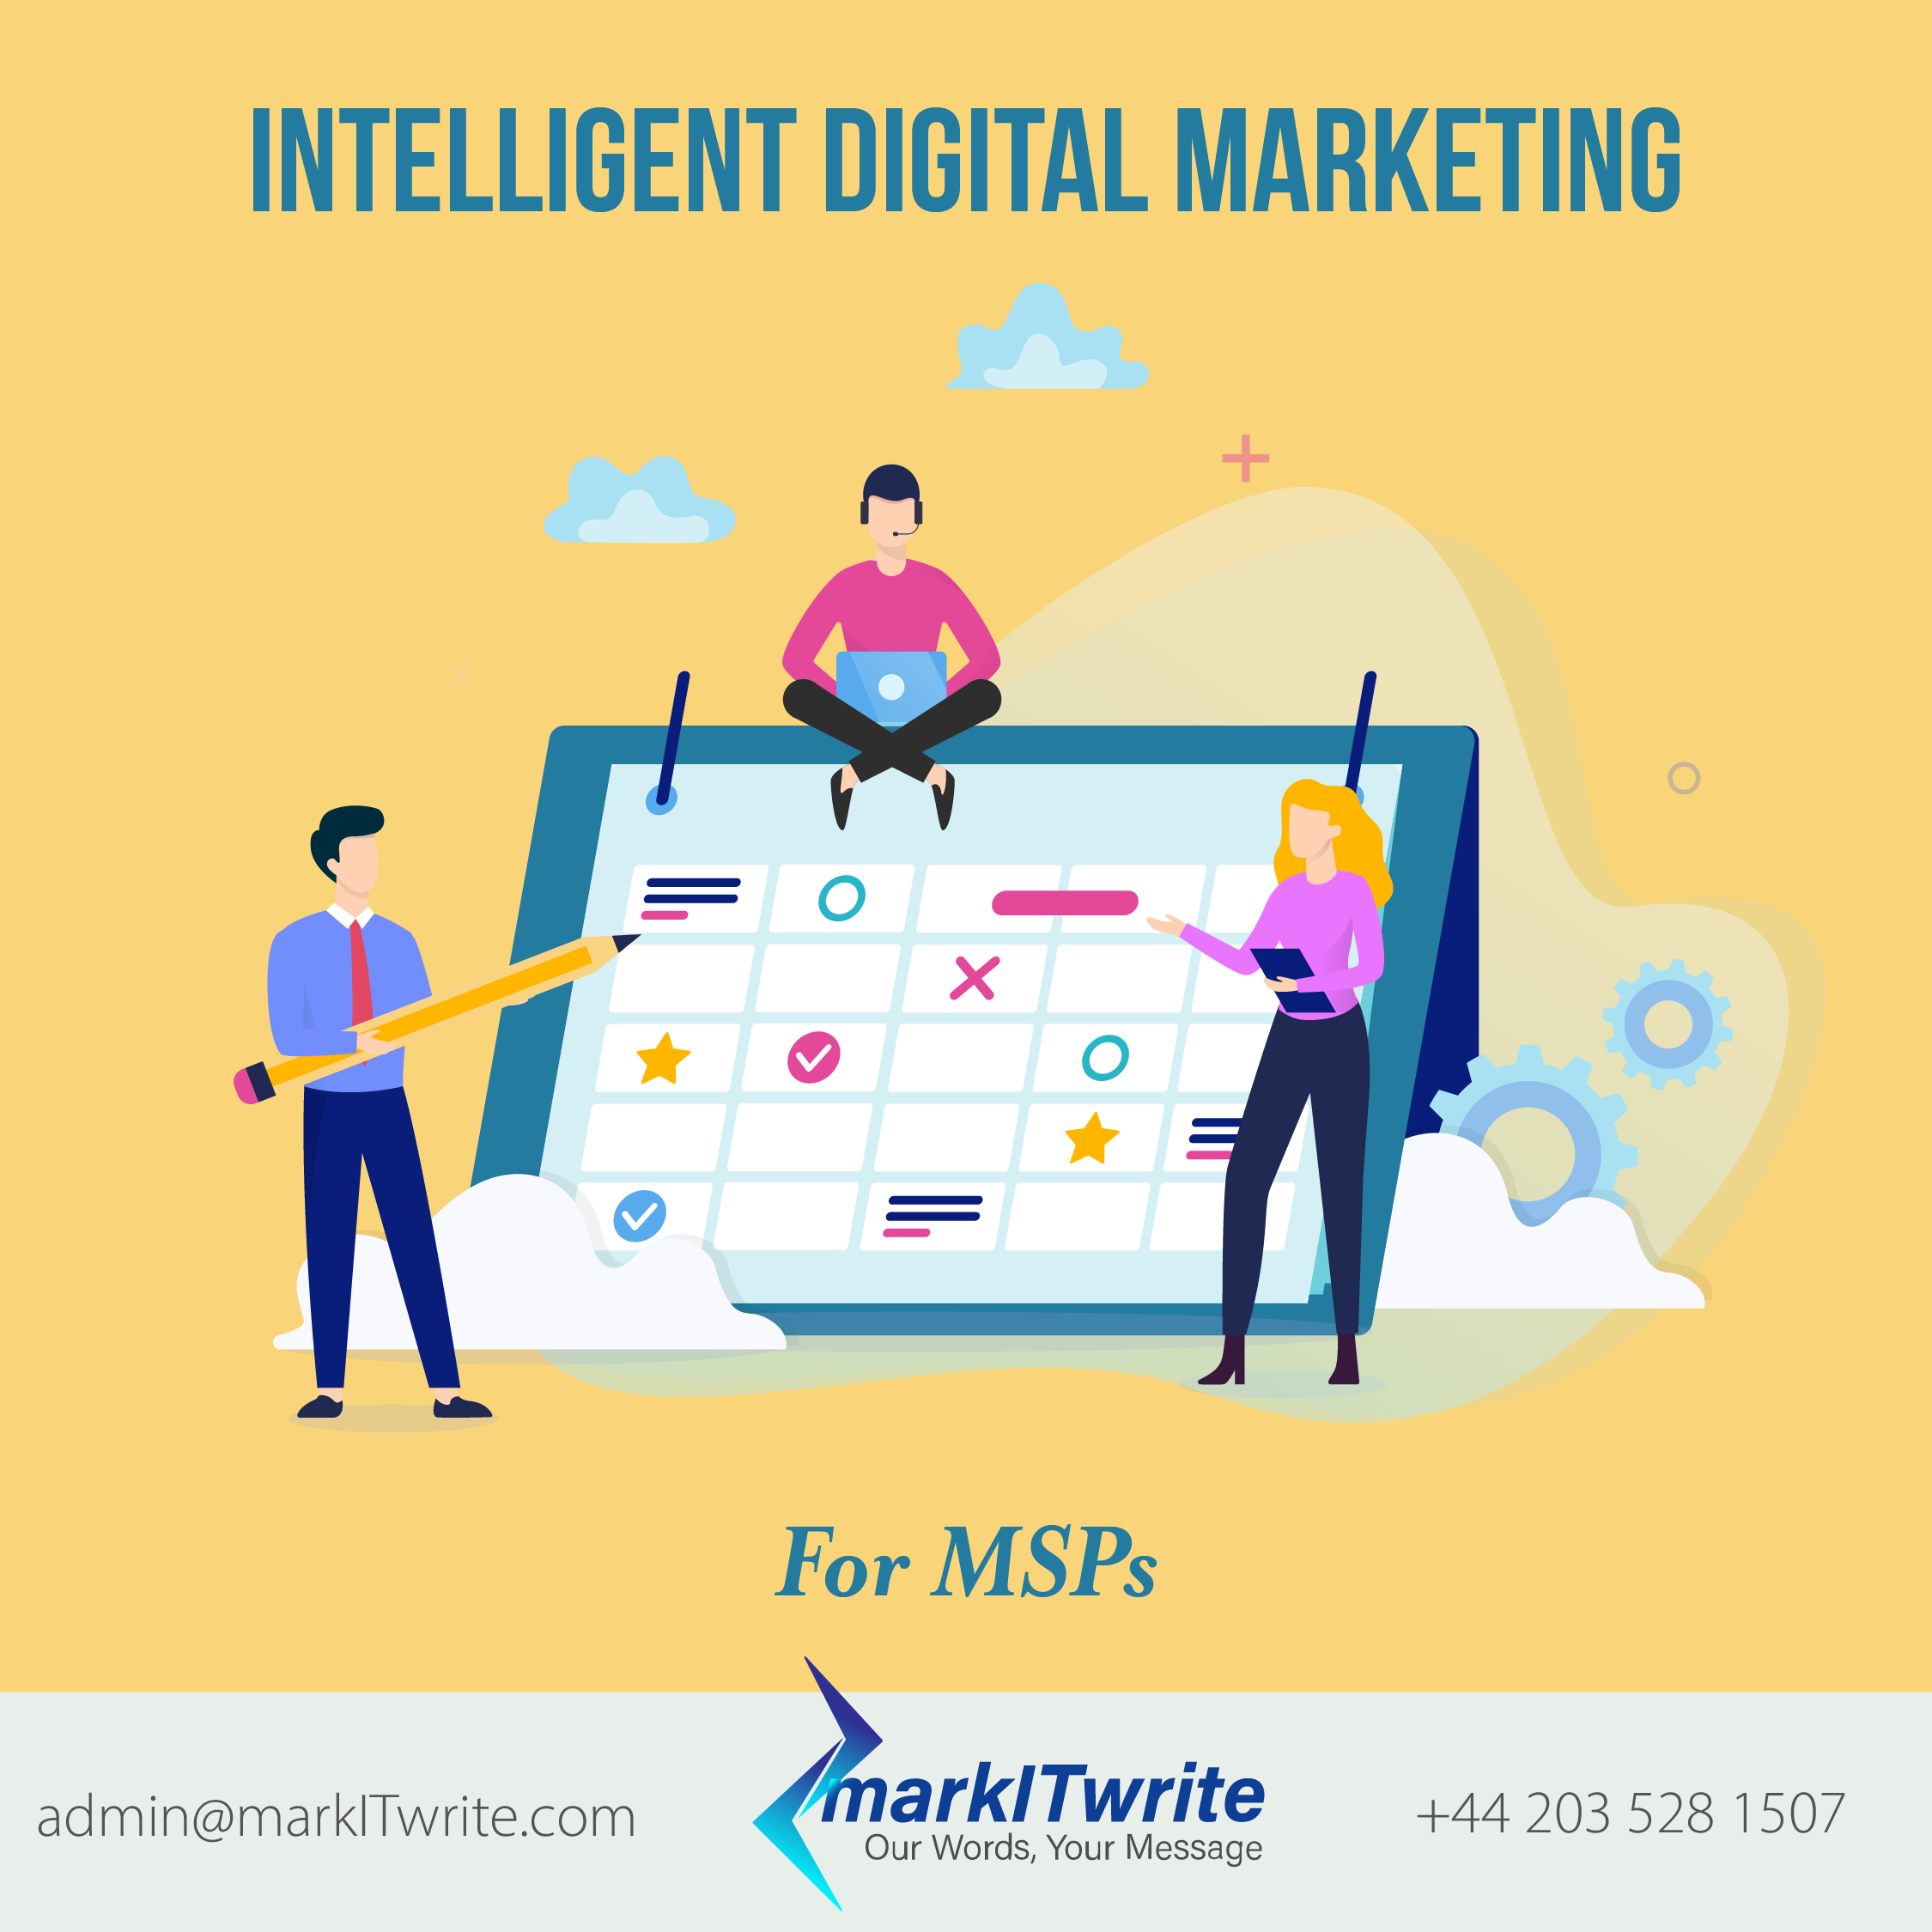 Intelligent Digital Marketing for MSPs